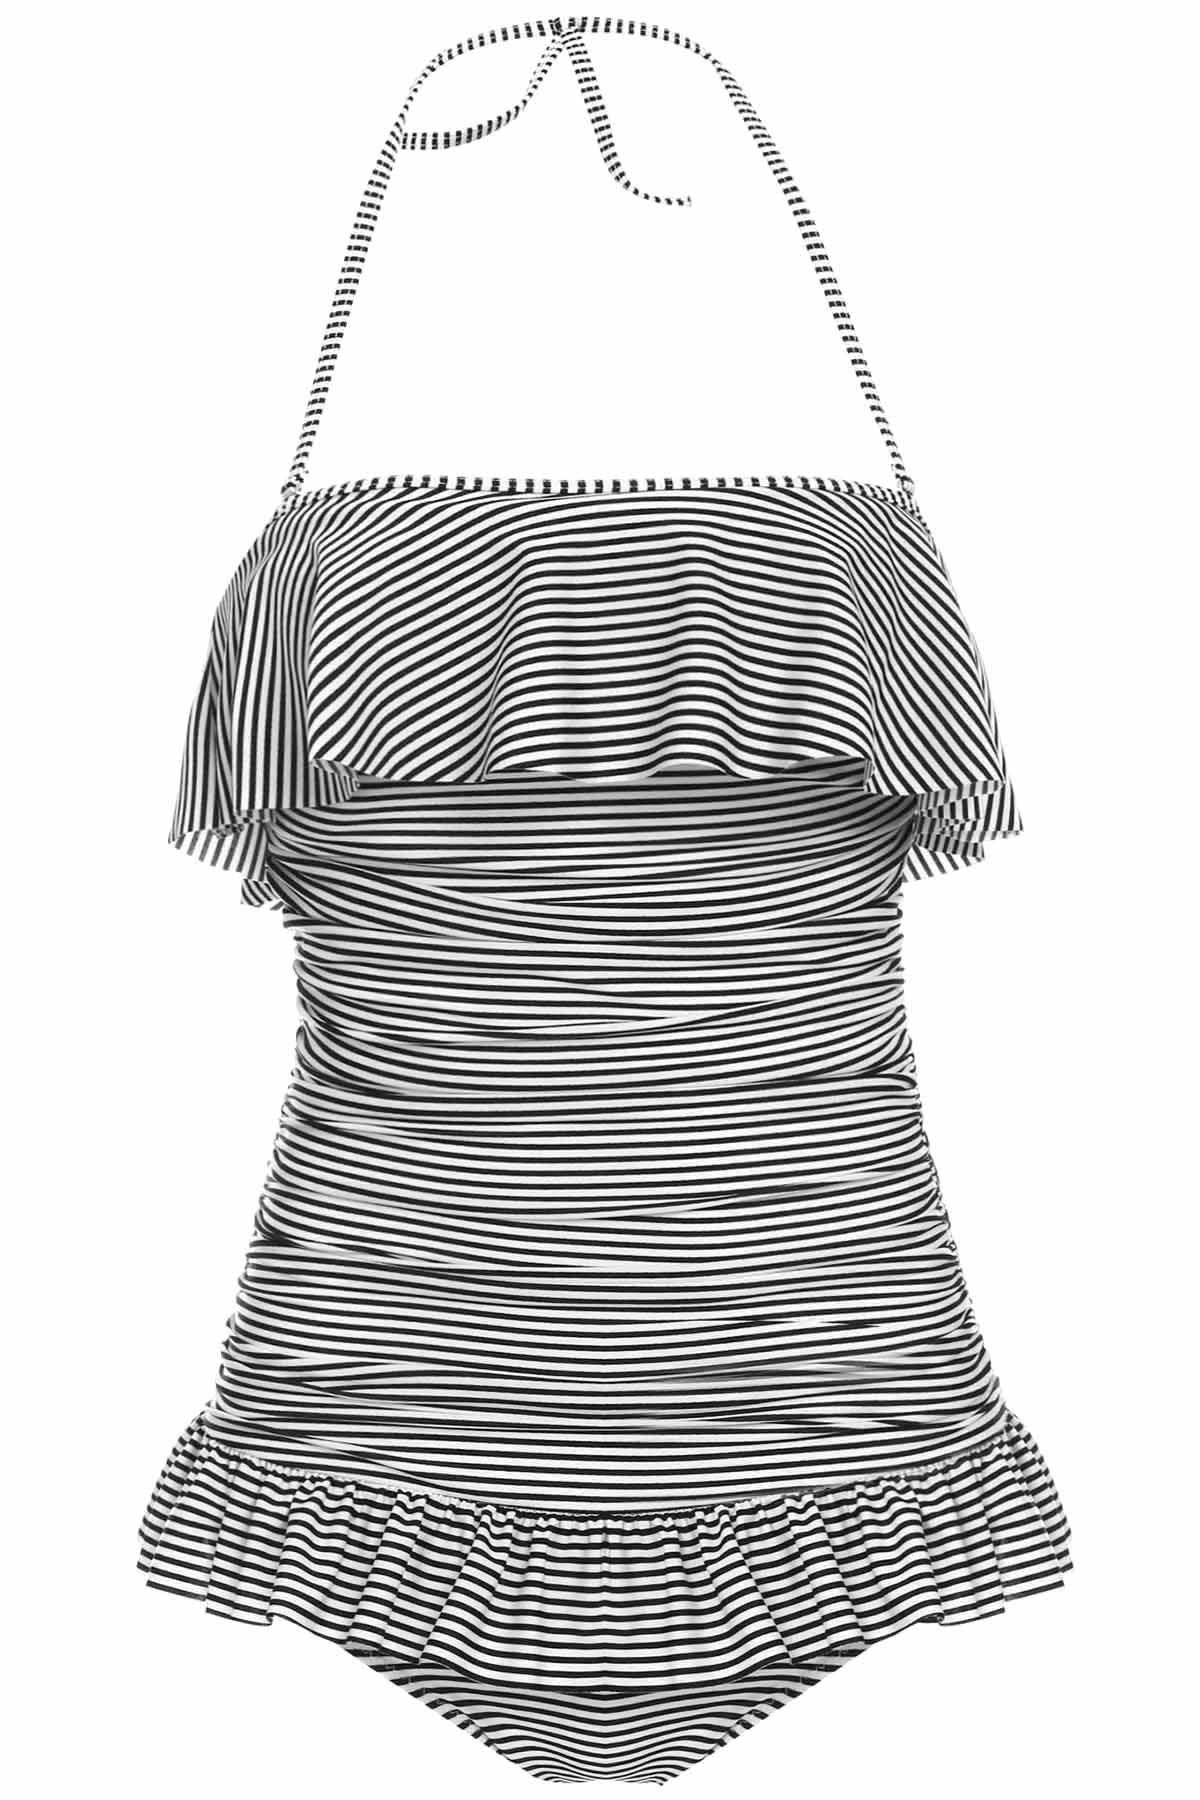 Women's Charming Stripe Ruffles Backless One Piece Swimsuit - STRIPE M